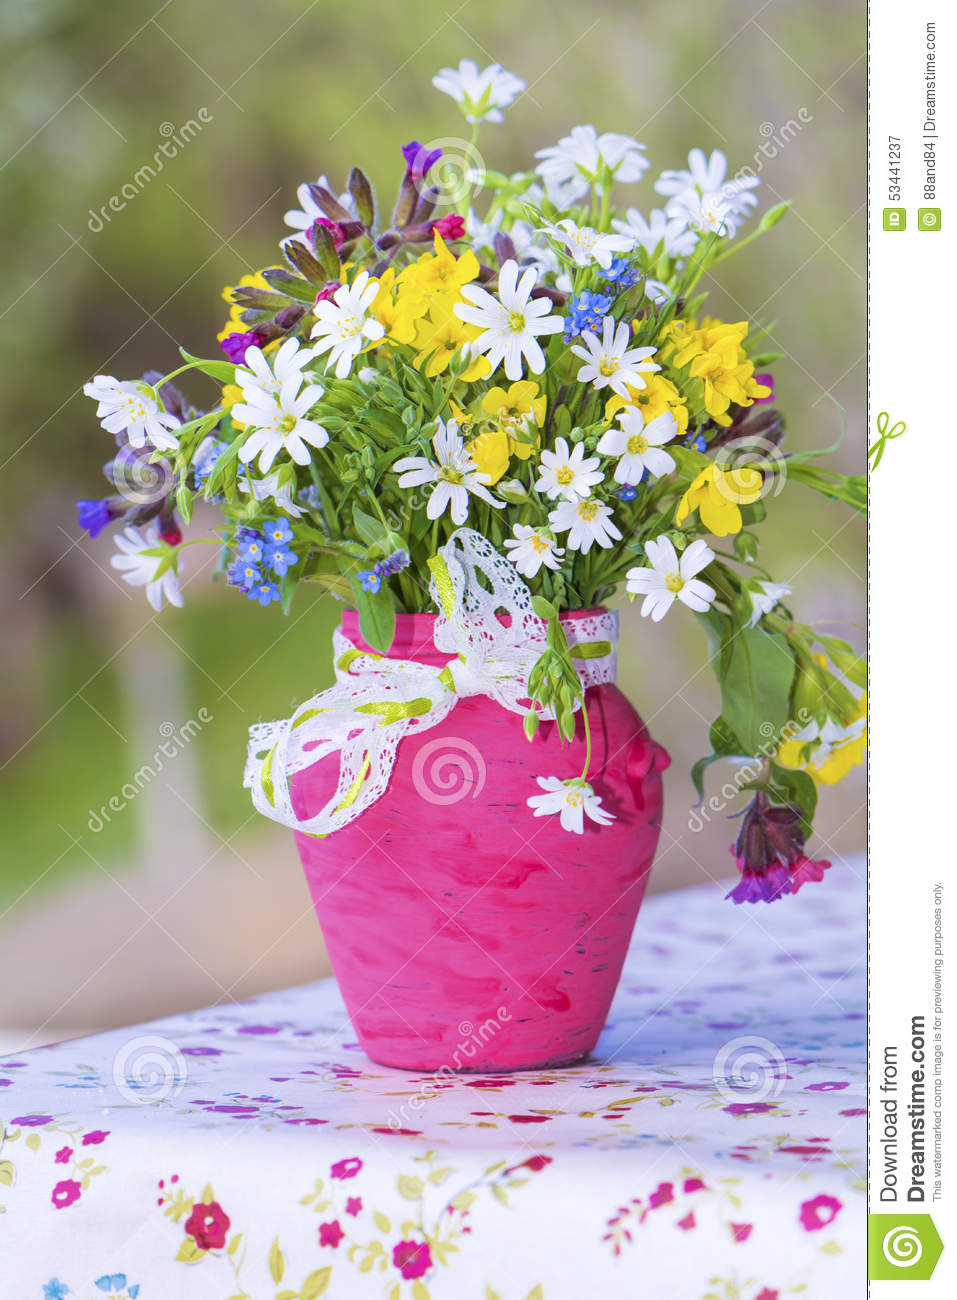 Free Fall Flower Desktop Wallpaper Beautiful Forest Flowers In Pink Vase With Ribbon Close